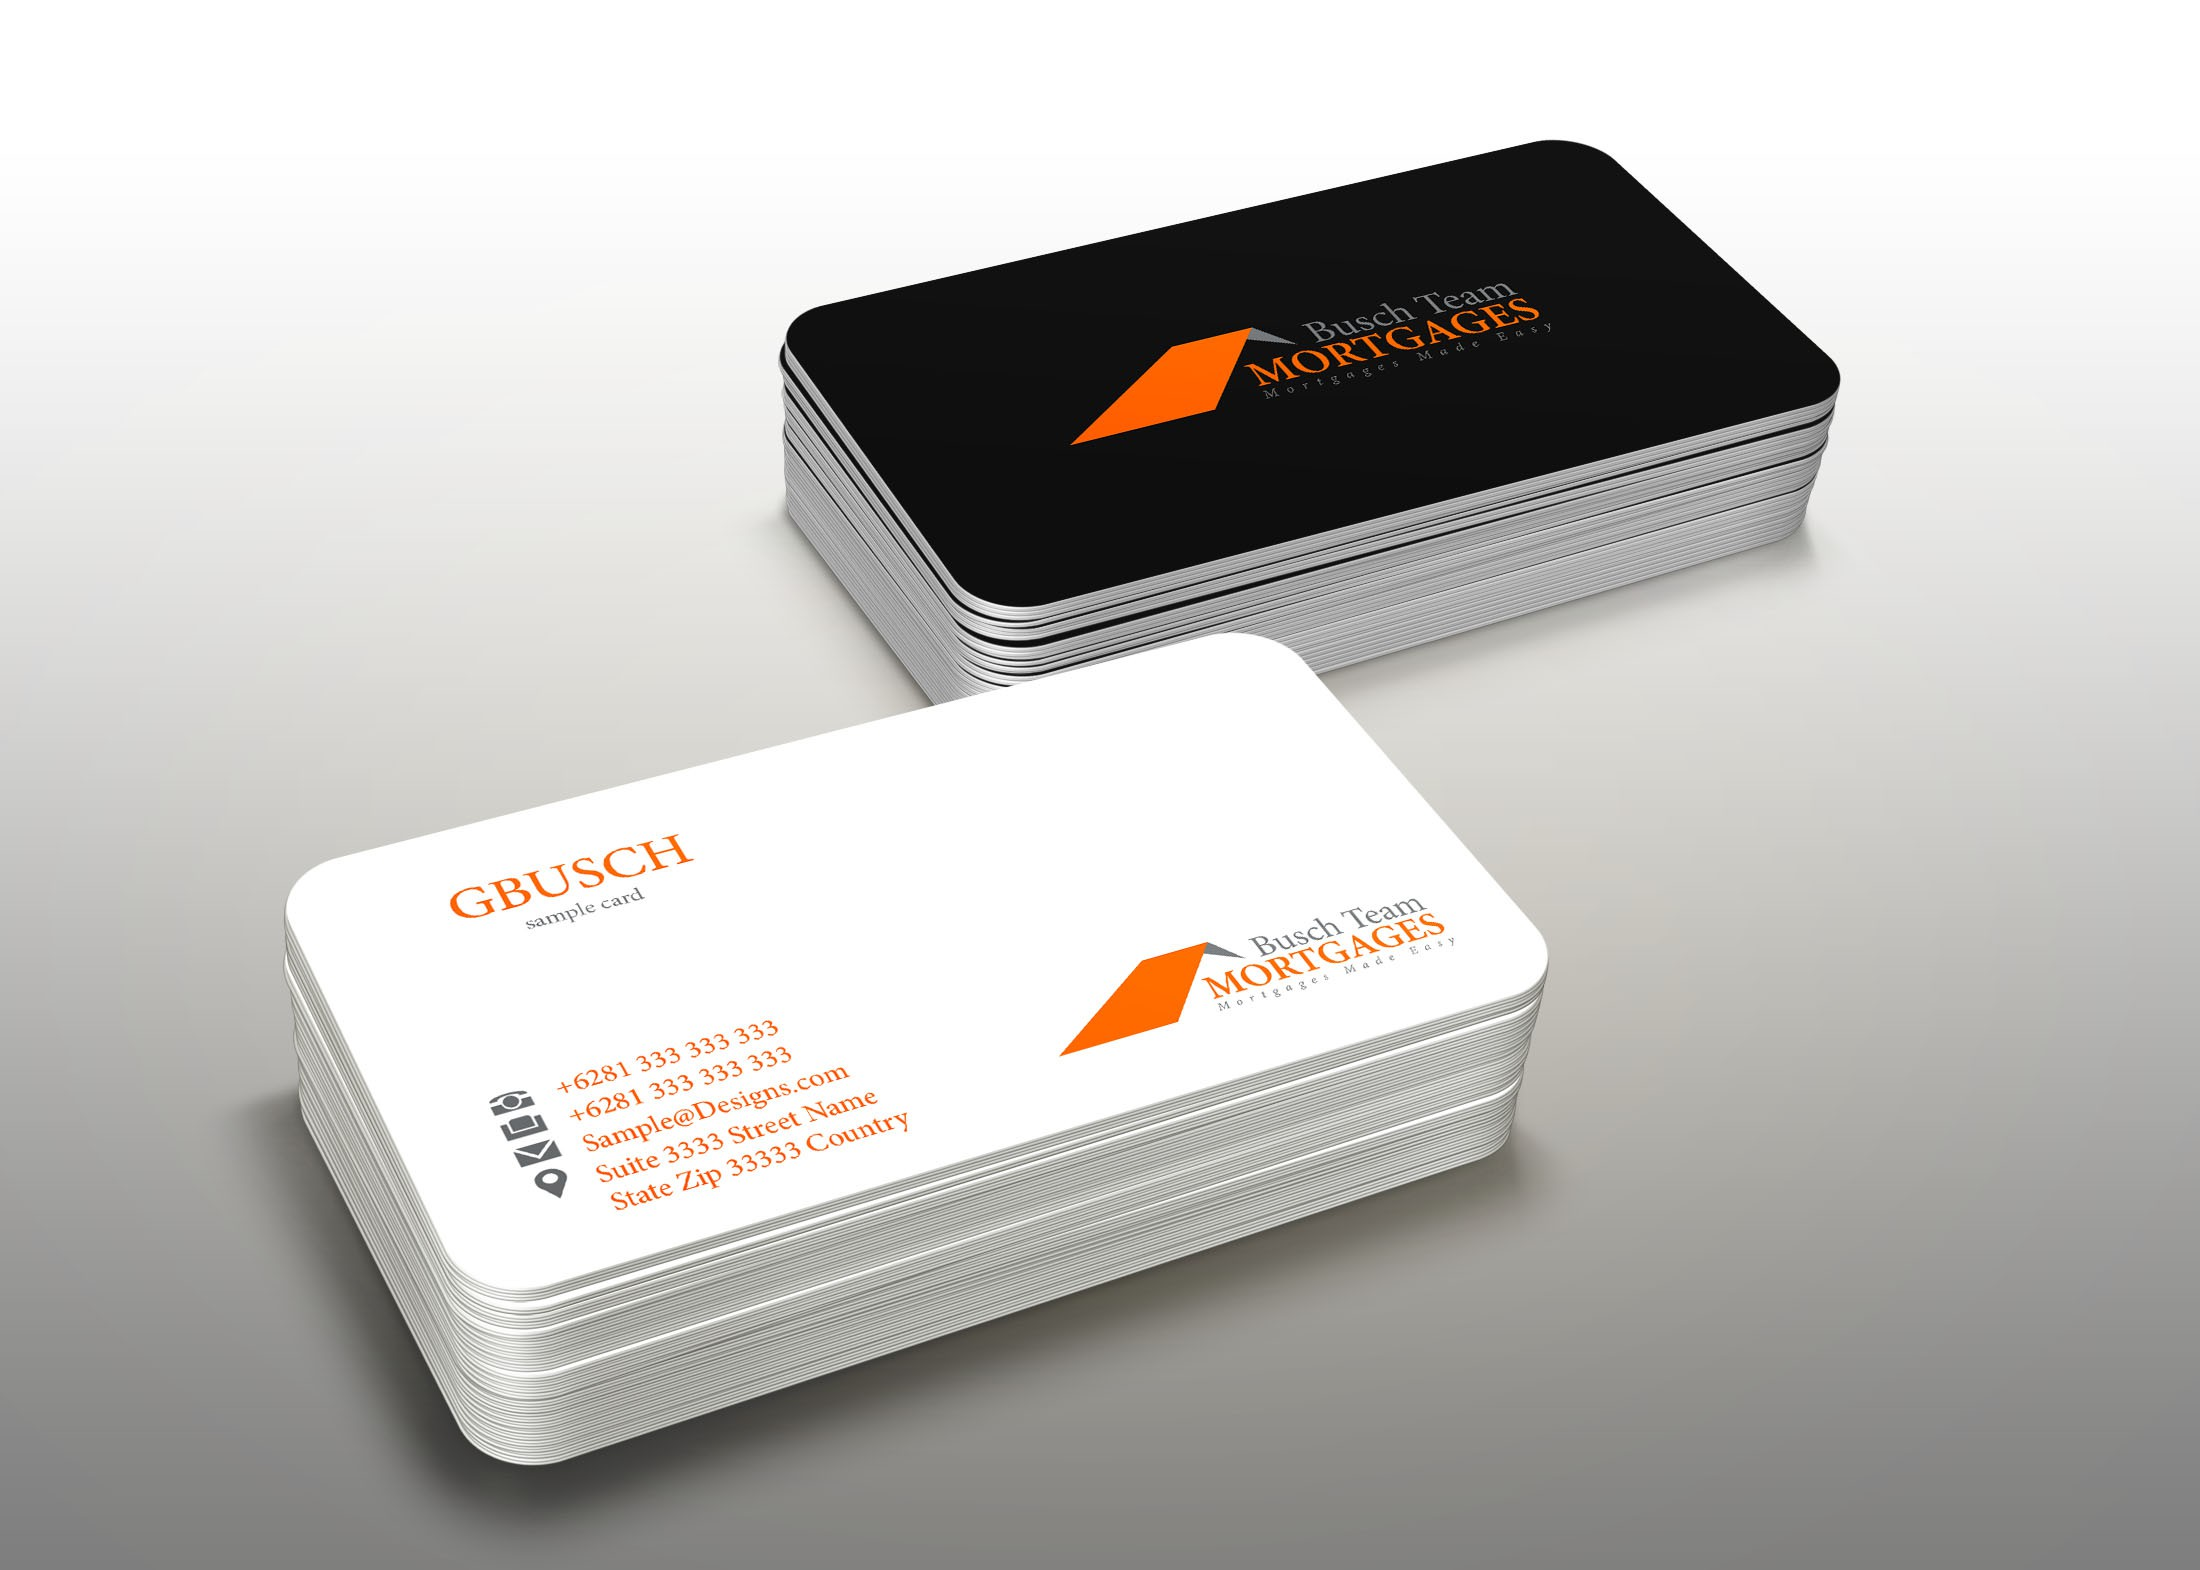 Gregg Busch Mortgages need a sleek cool concept to make a boring tedious business look exciting